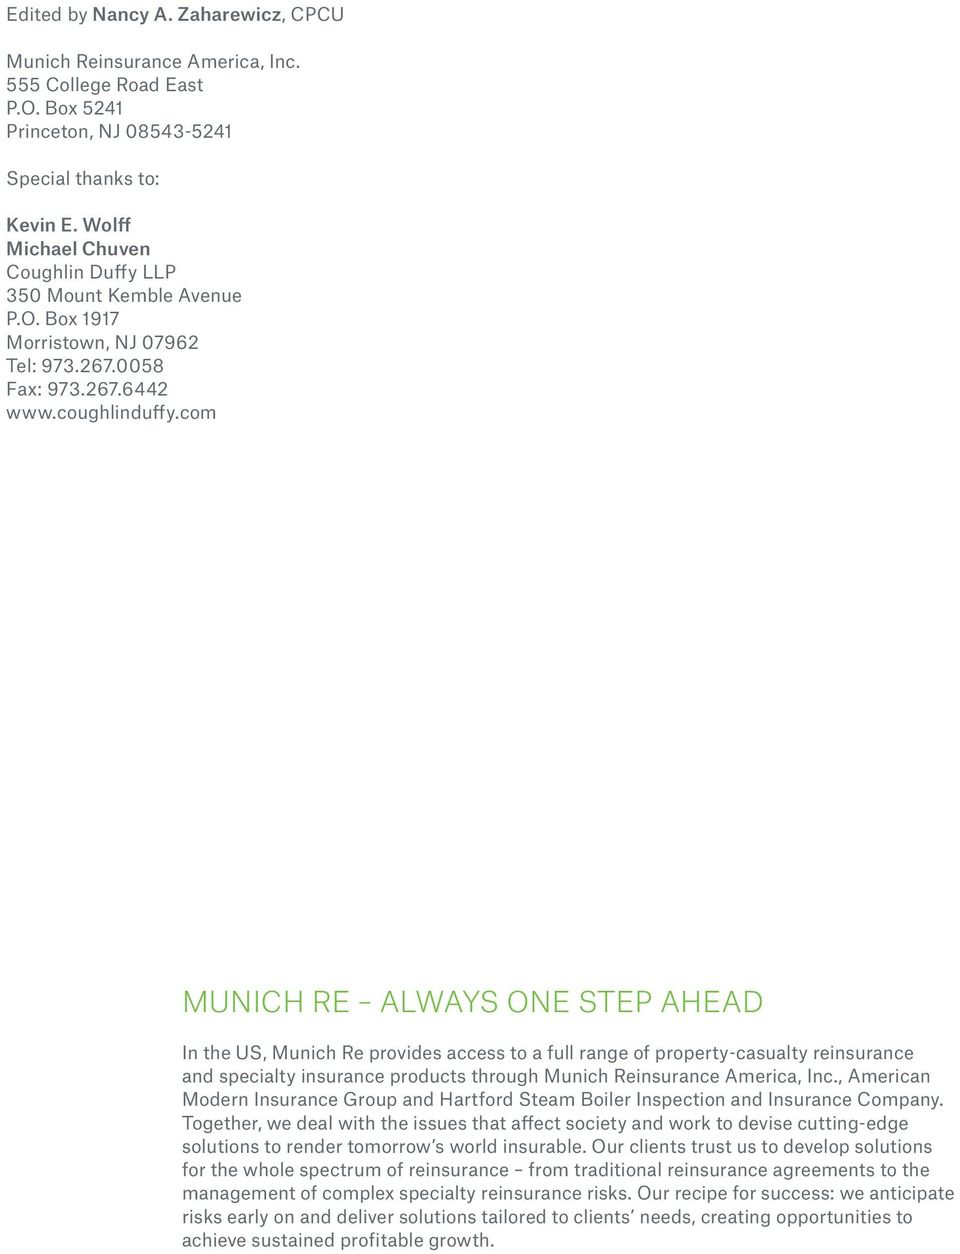 com MUNICH RE ALWAYS ONE STEP AHEAD In the US, Munich Re provides access to a full range of property-casualty reinsurance and specialty insurance products through Munich Reinsurance America, Inc.